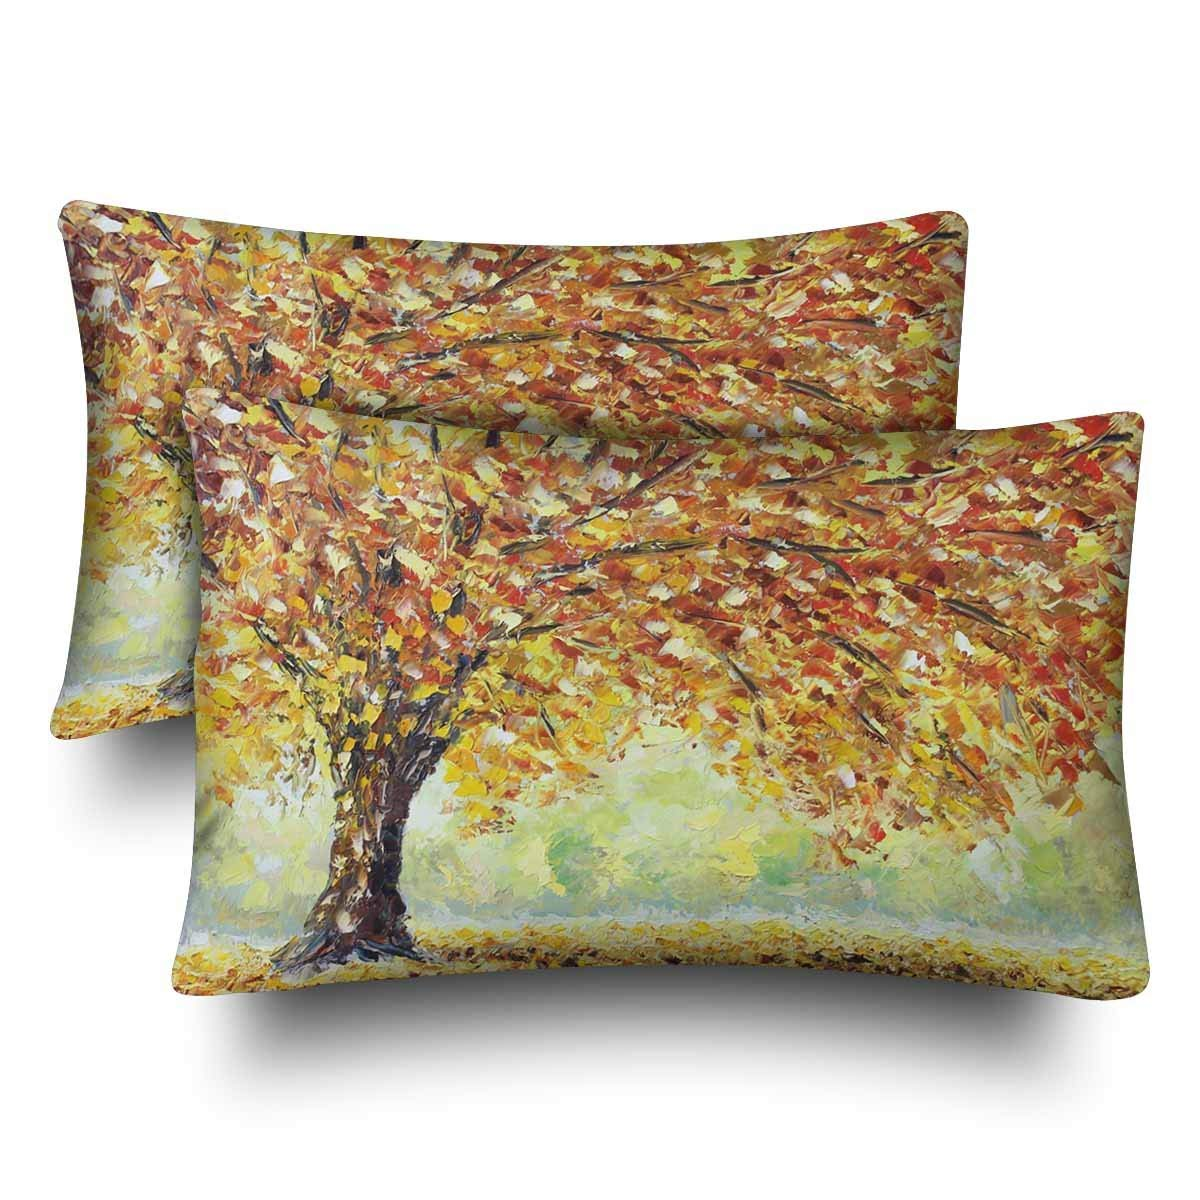 GCKG Lonely Autumn Tree Fallen Leaves Clouds Pillow Cases Pillowcase 20x30 inches Set of 2 - image 4 de 4